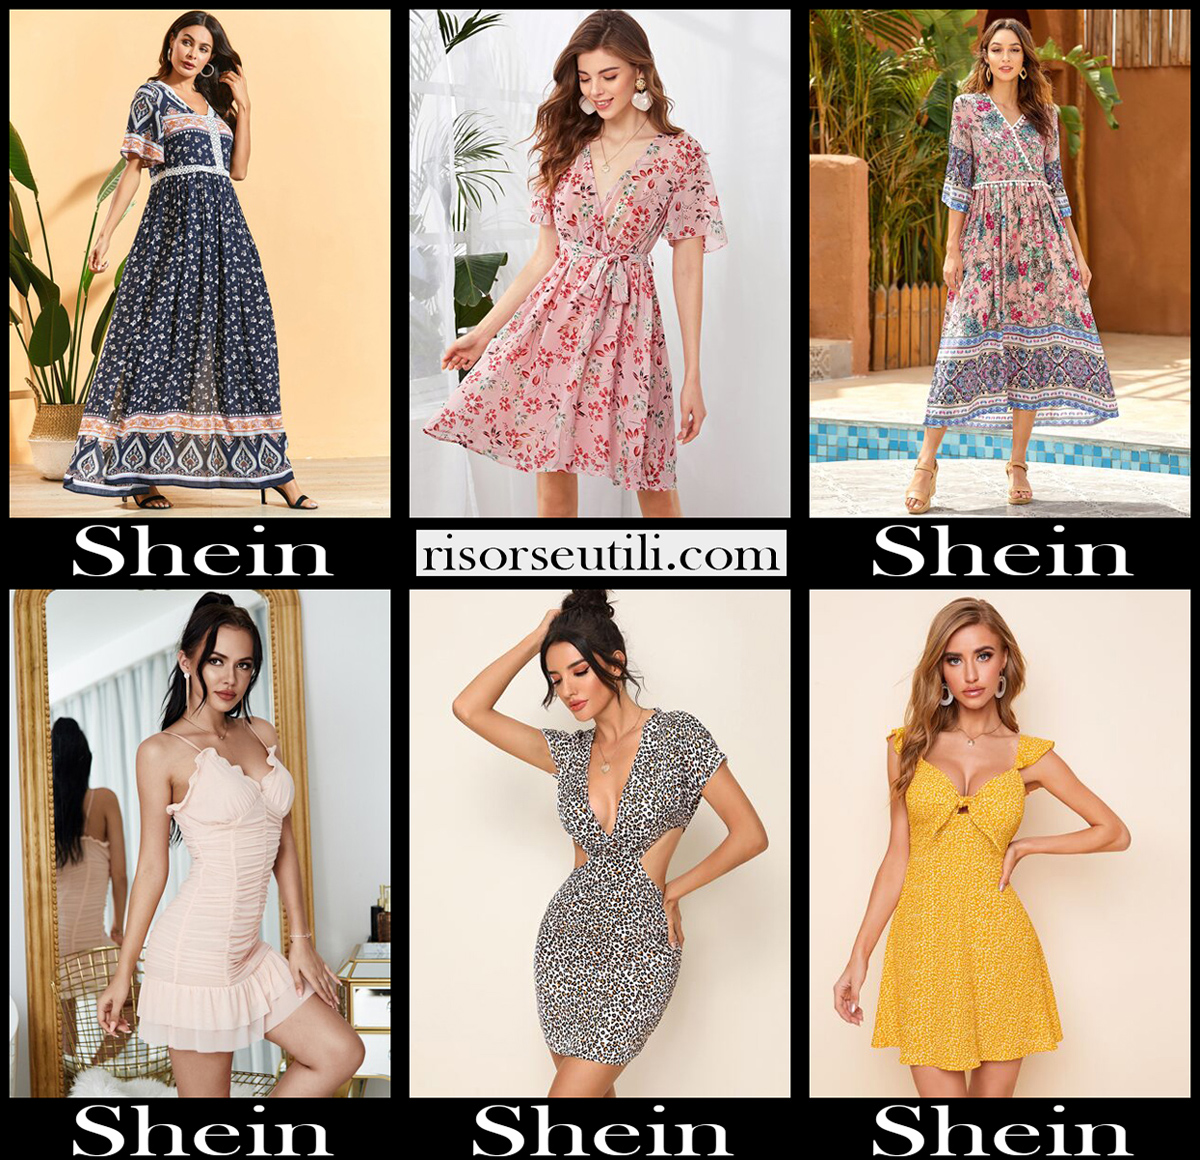 Shein dresses 2020 new arrivals womens clothing